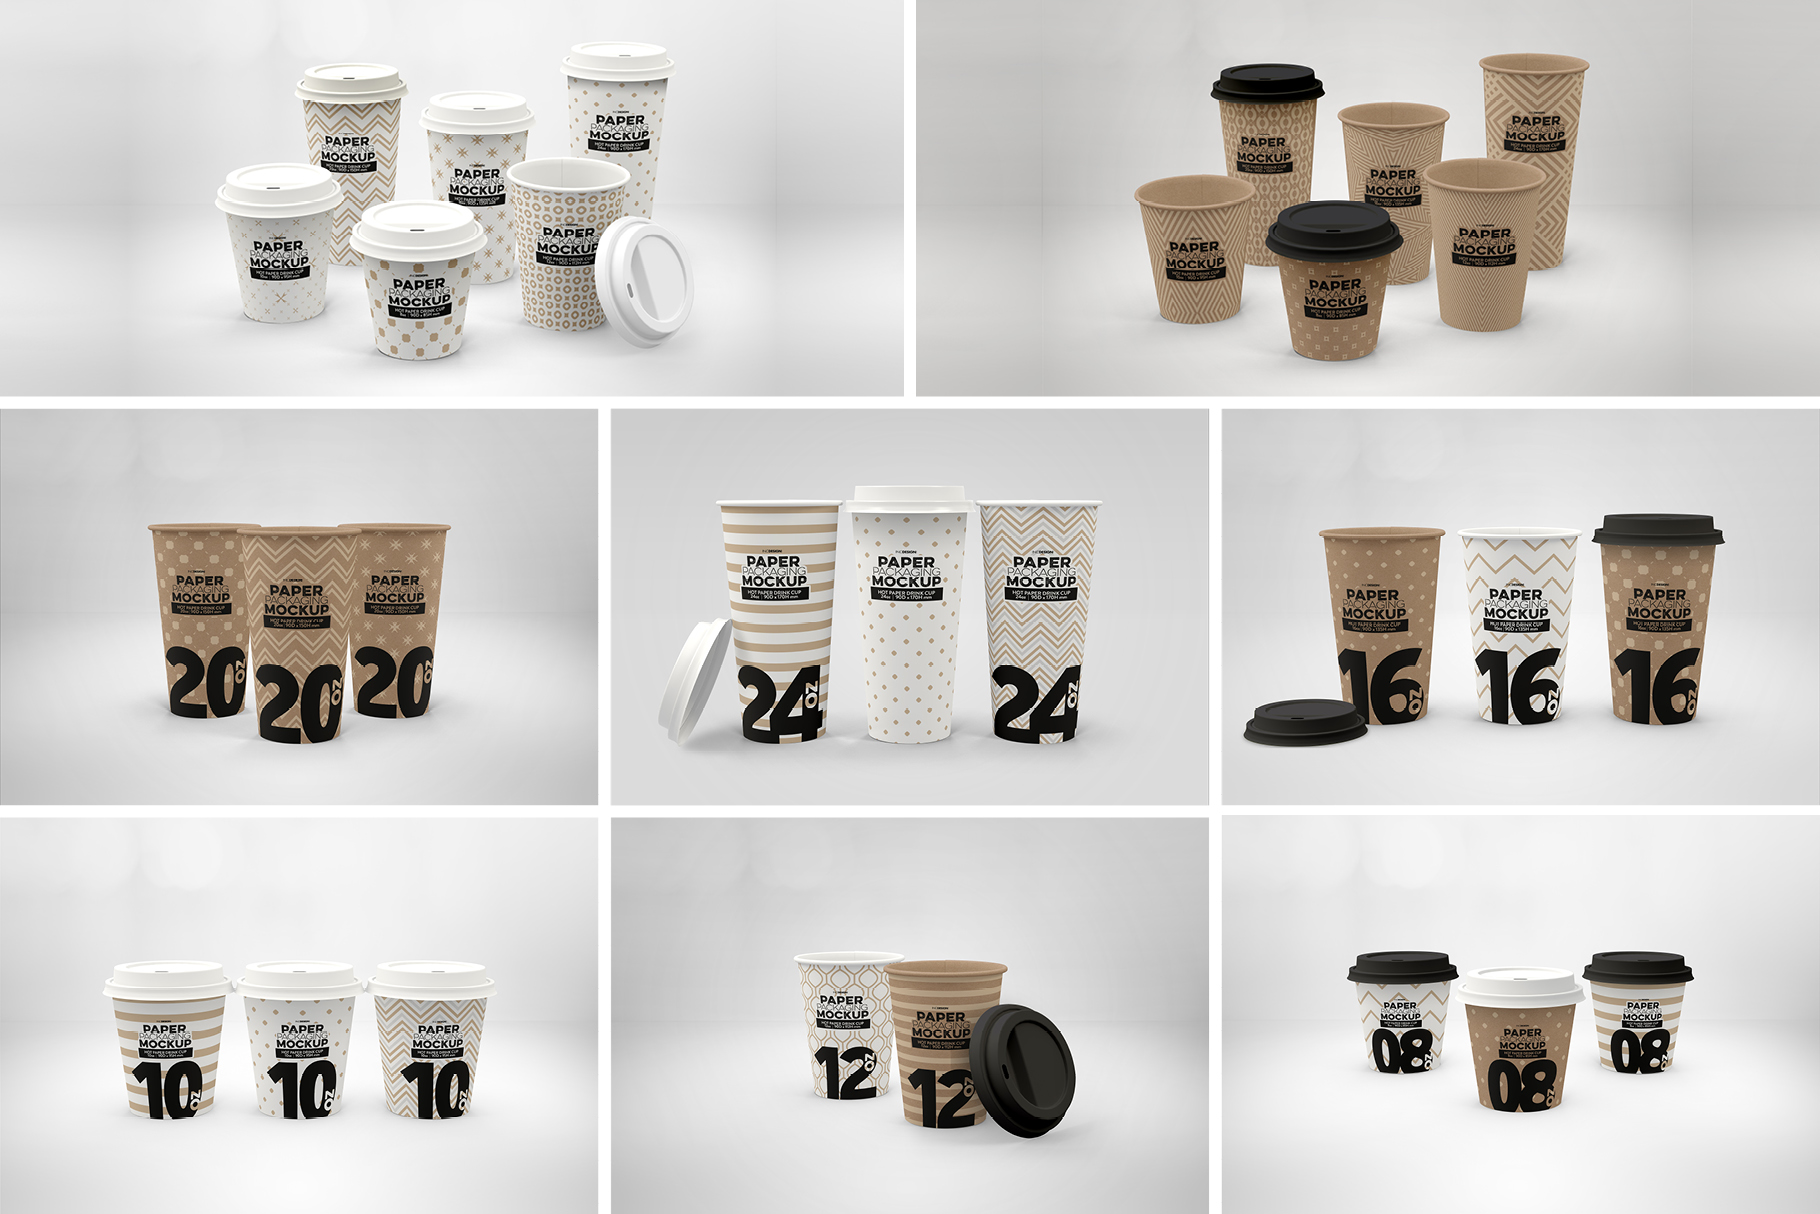 Paper Hot Drink Cups Packaging Mockup example image 2